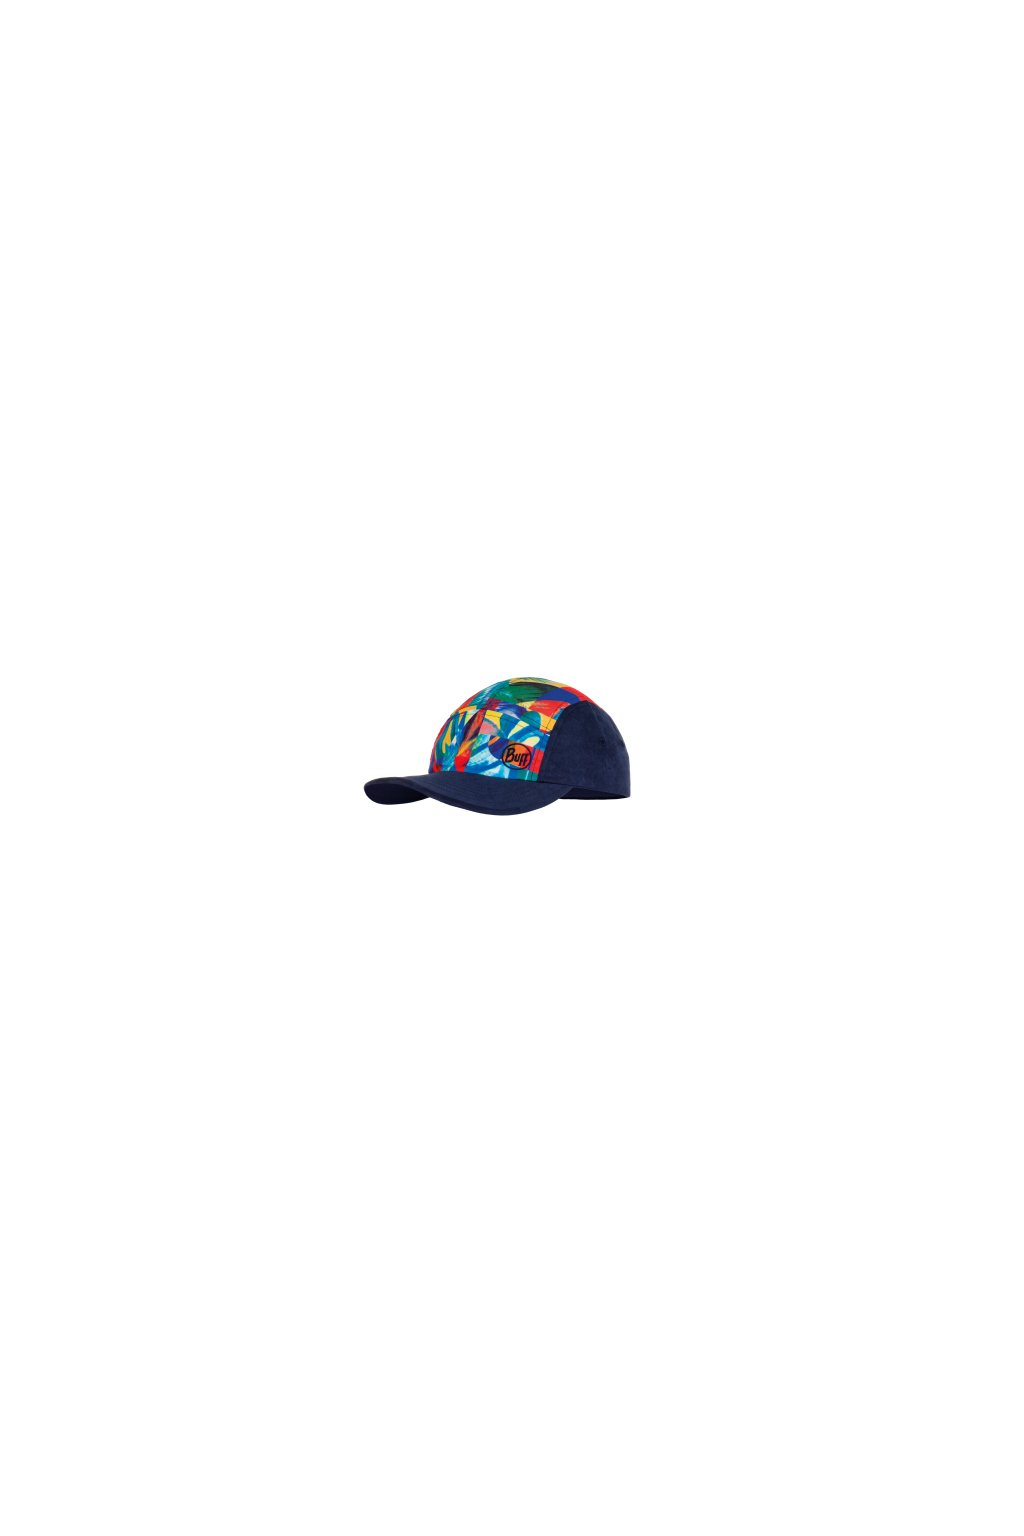 BUFF ČEPICE 5 PANEL CAP SPIROS MULTI KIDS